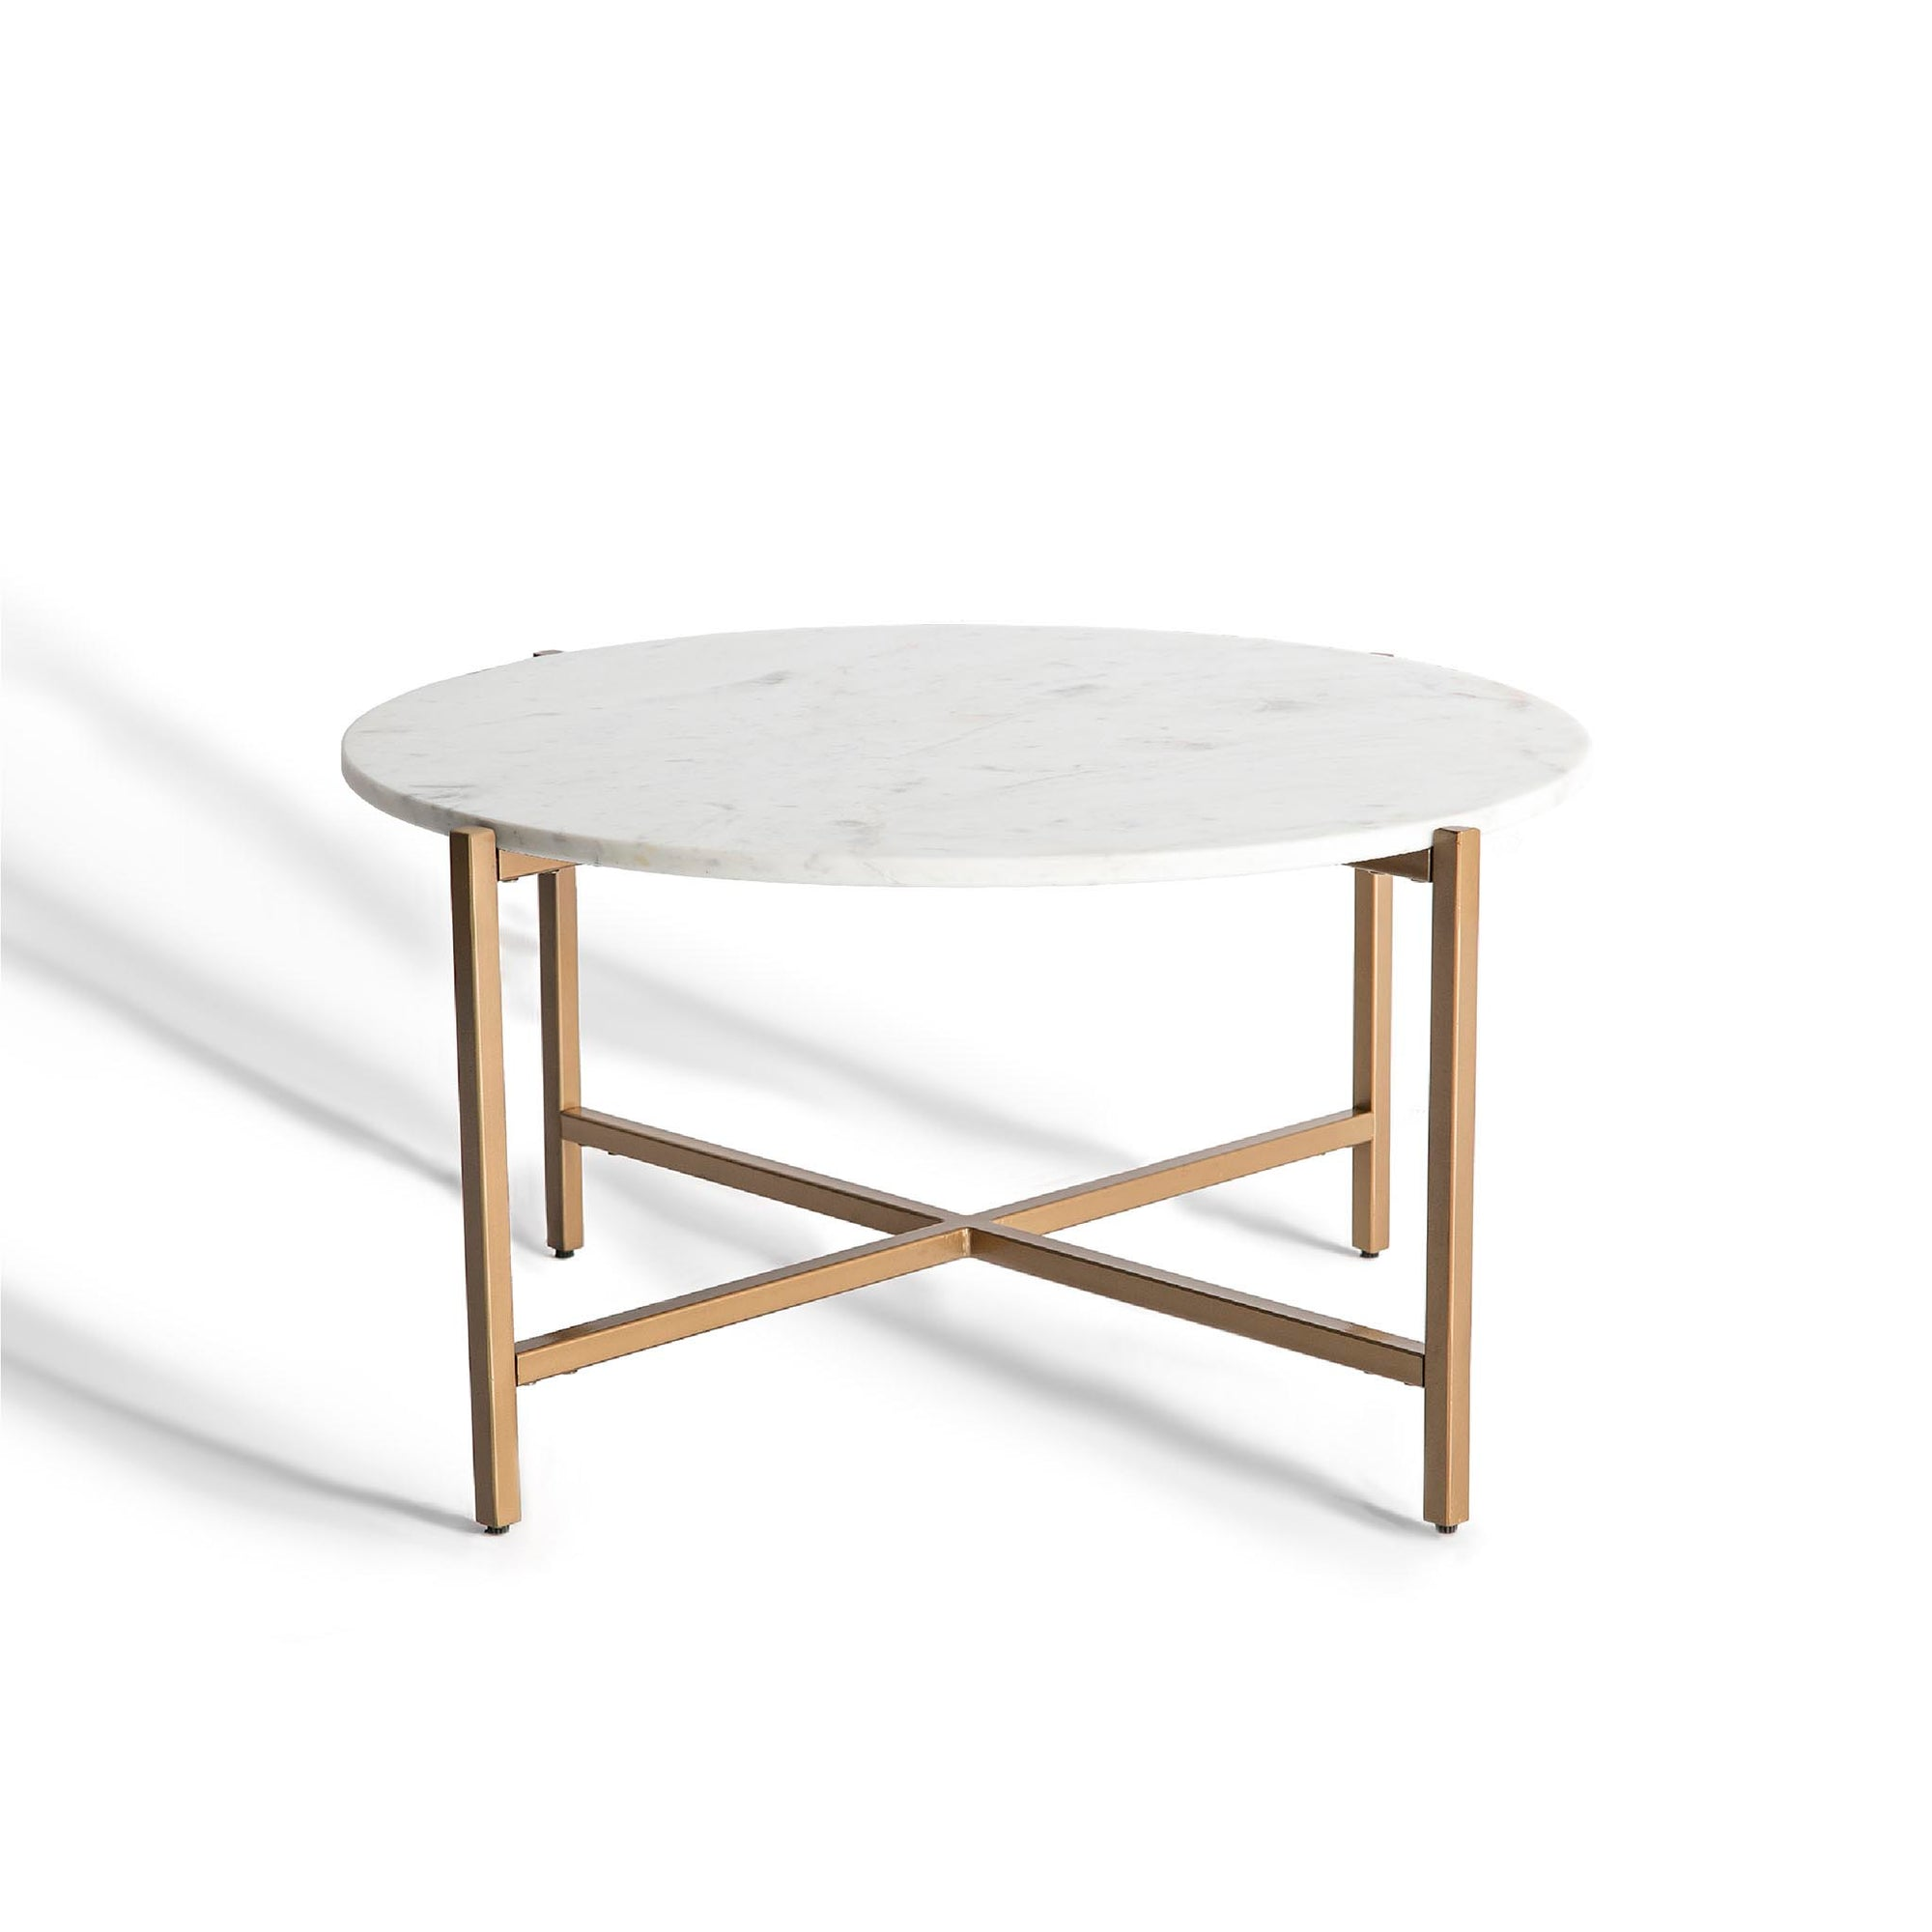 Kandla White Round Marble Coffee Table with Gold Base by Roseland Furniture